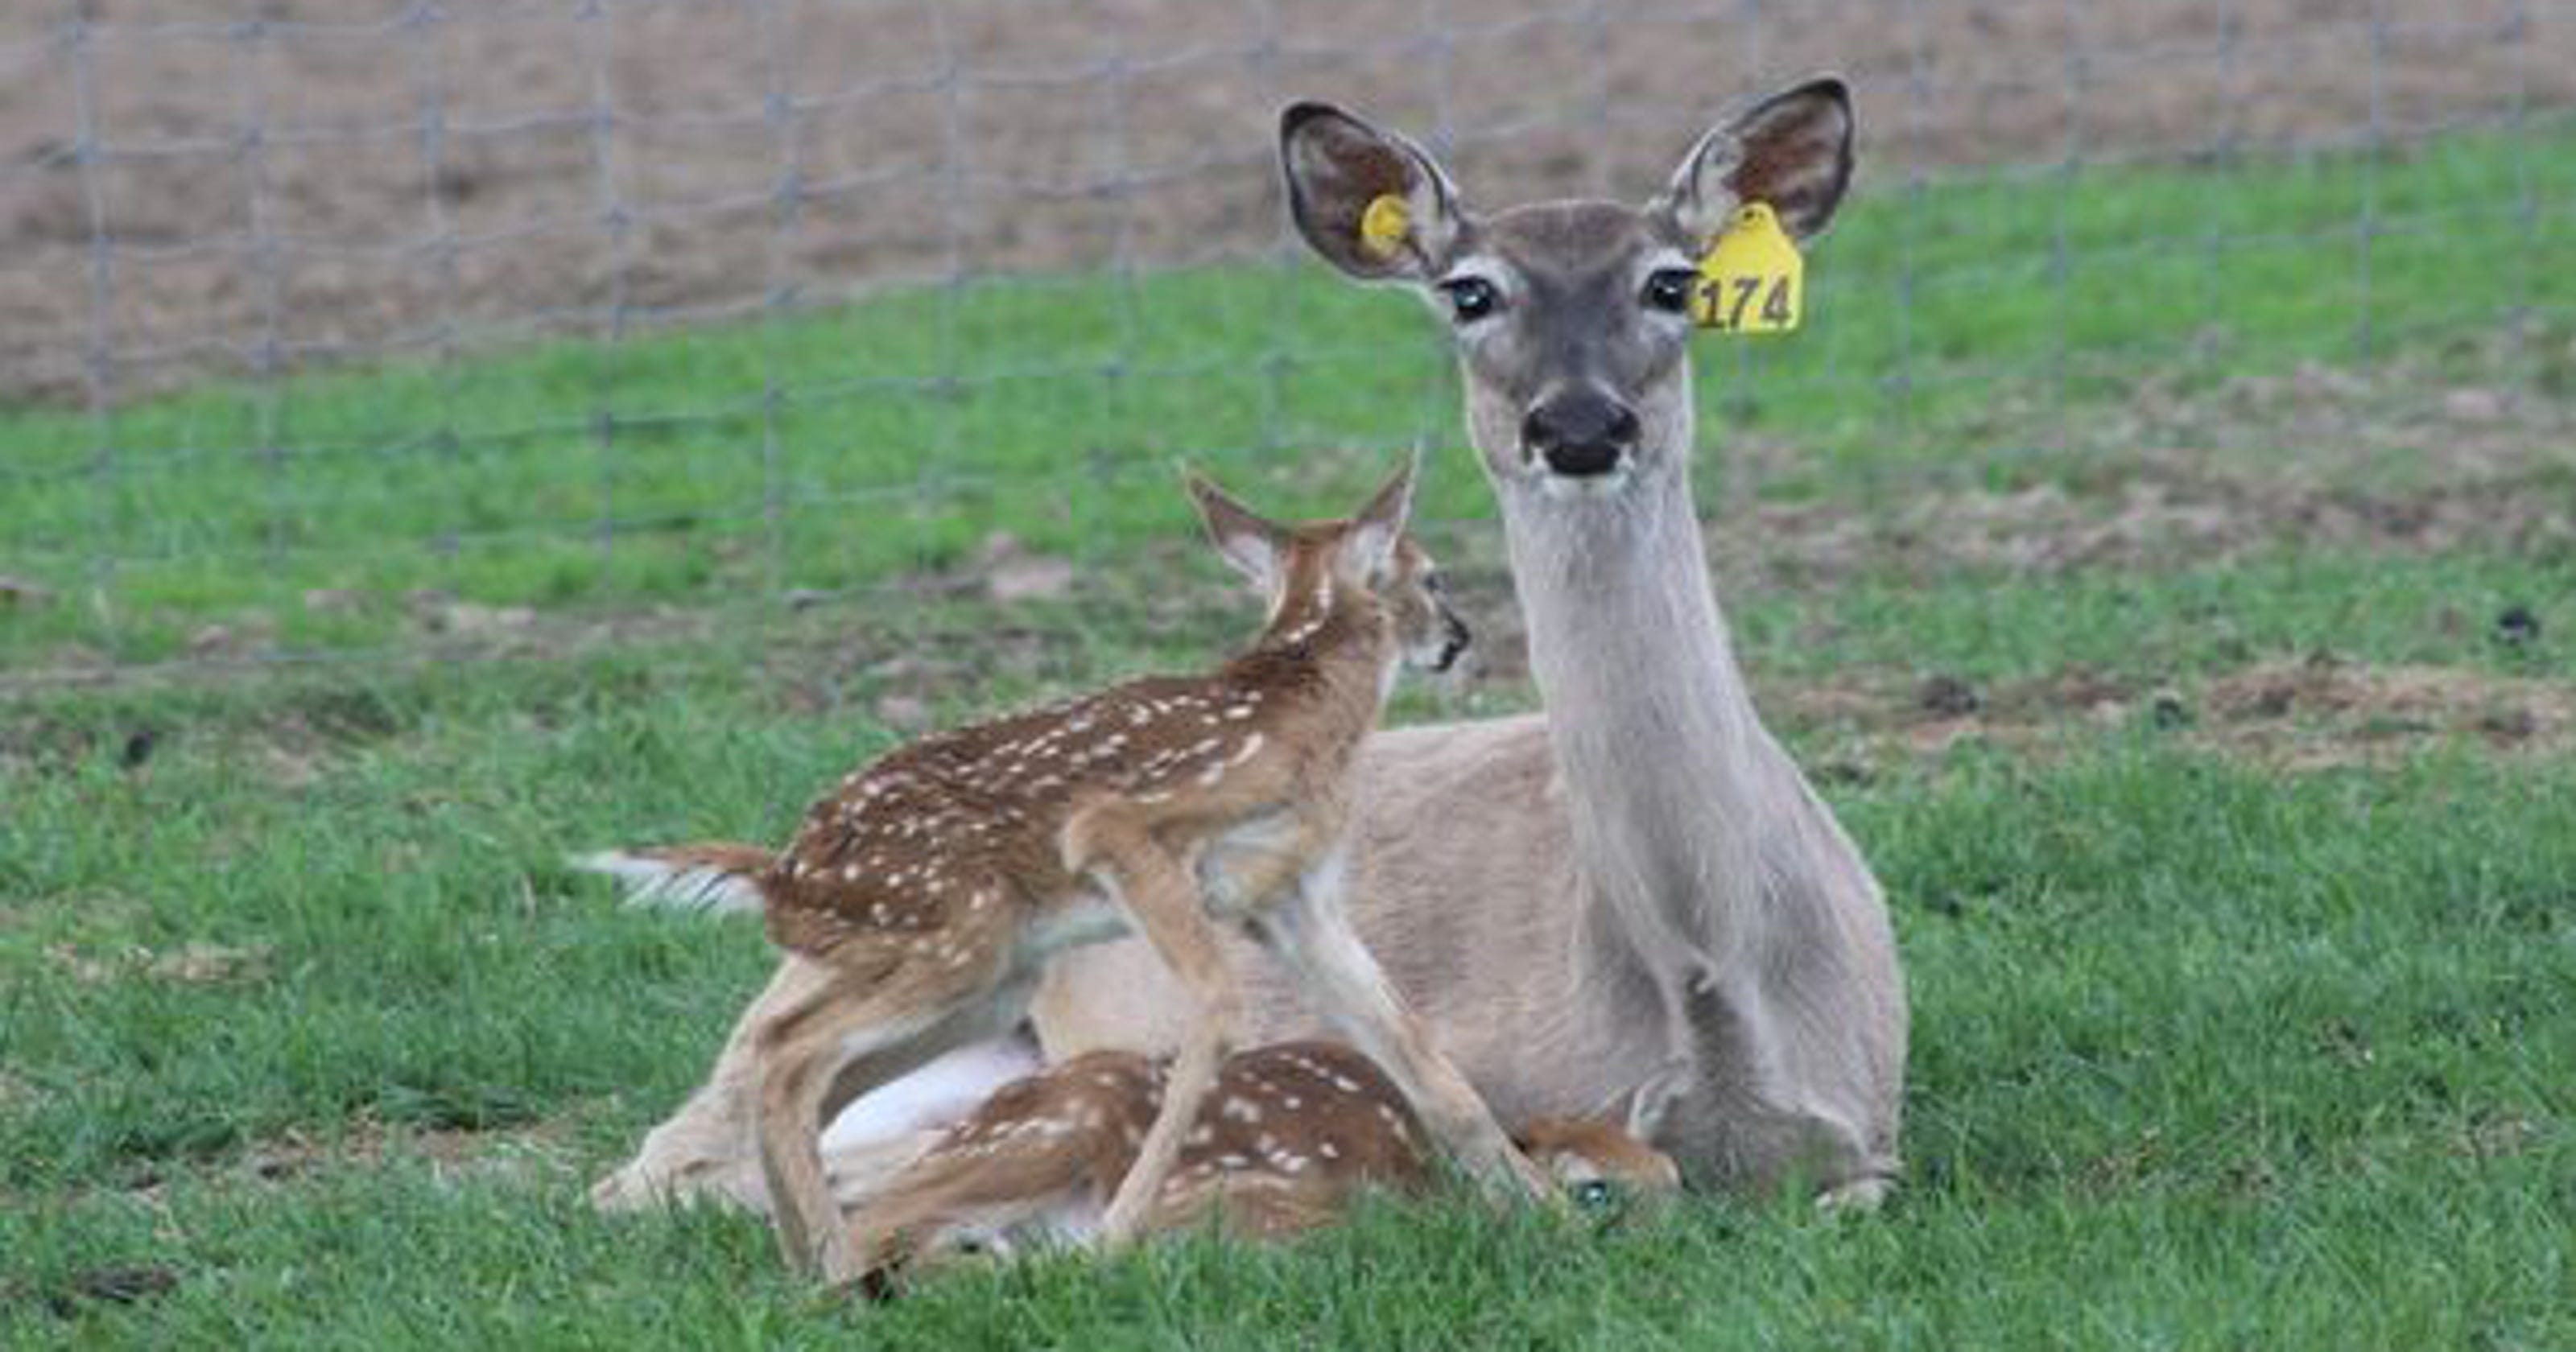 baiting feeding bans initiated due to cwd positive deer farm in